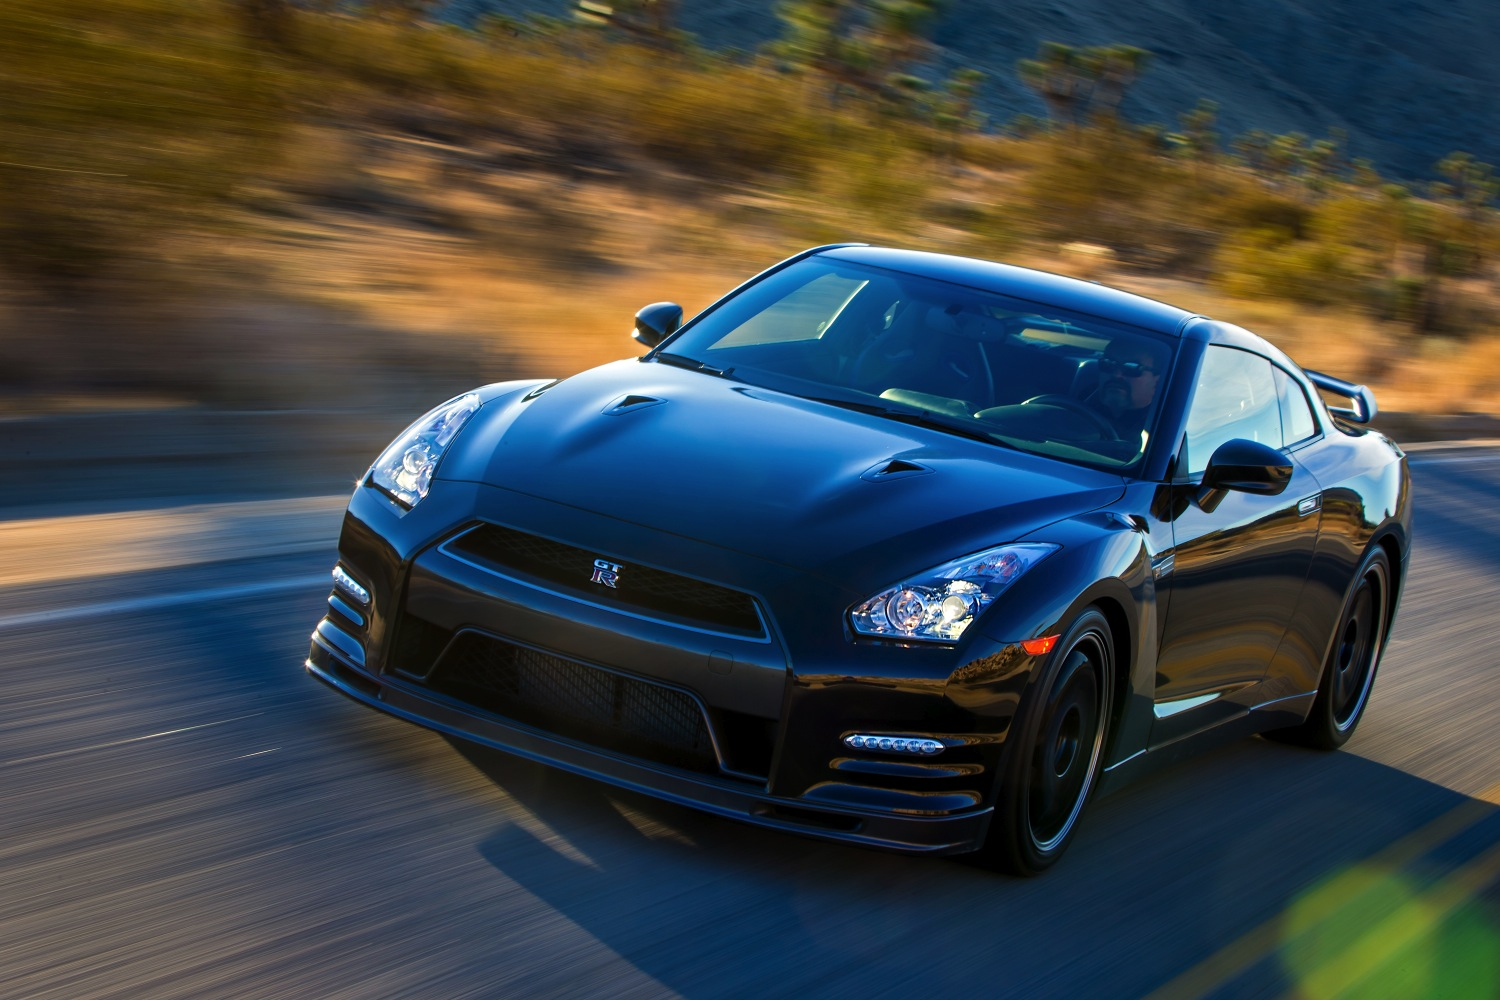 2014 Nissan Gtr Prices And Specs For Track Edition Black Gt R Specifications Only Instead Of Just Drool Worthy Videos Your Car Being Slung Around A Road With Near Reckless Abandon Or Cold Hard Numbers You Give Us Both